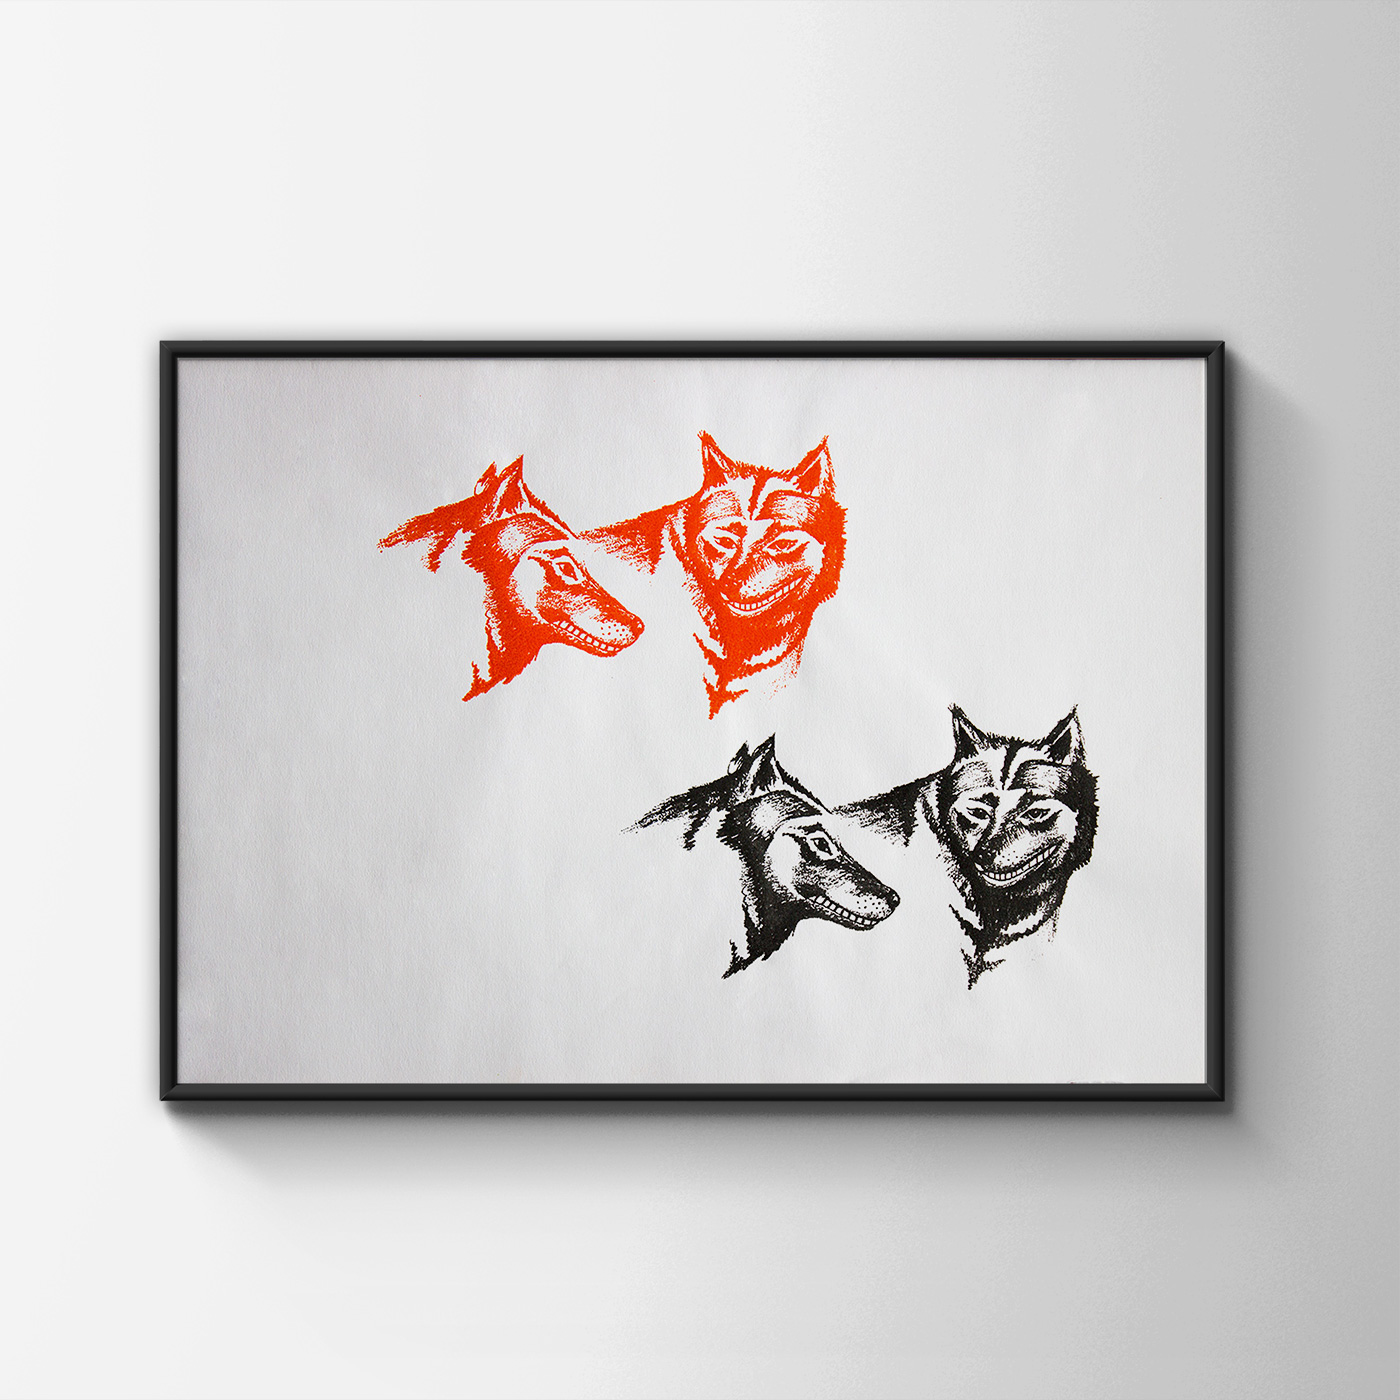 art-prints, serigraphs, animal, graphical, animals, humor, black, red, ink, paper, amusing, decorative, design, interior, interior-design, wild-animals, Buy original high quality art. Paintings, drawings, limited edition prints & posters by talented artists.